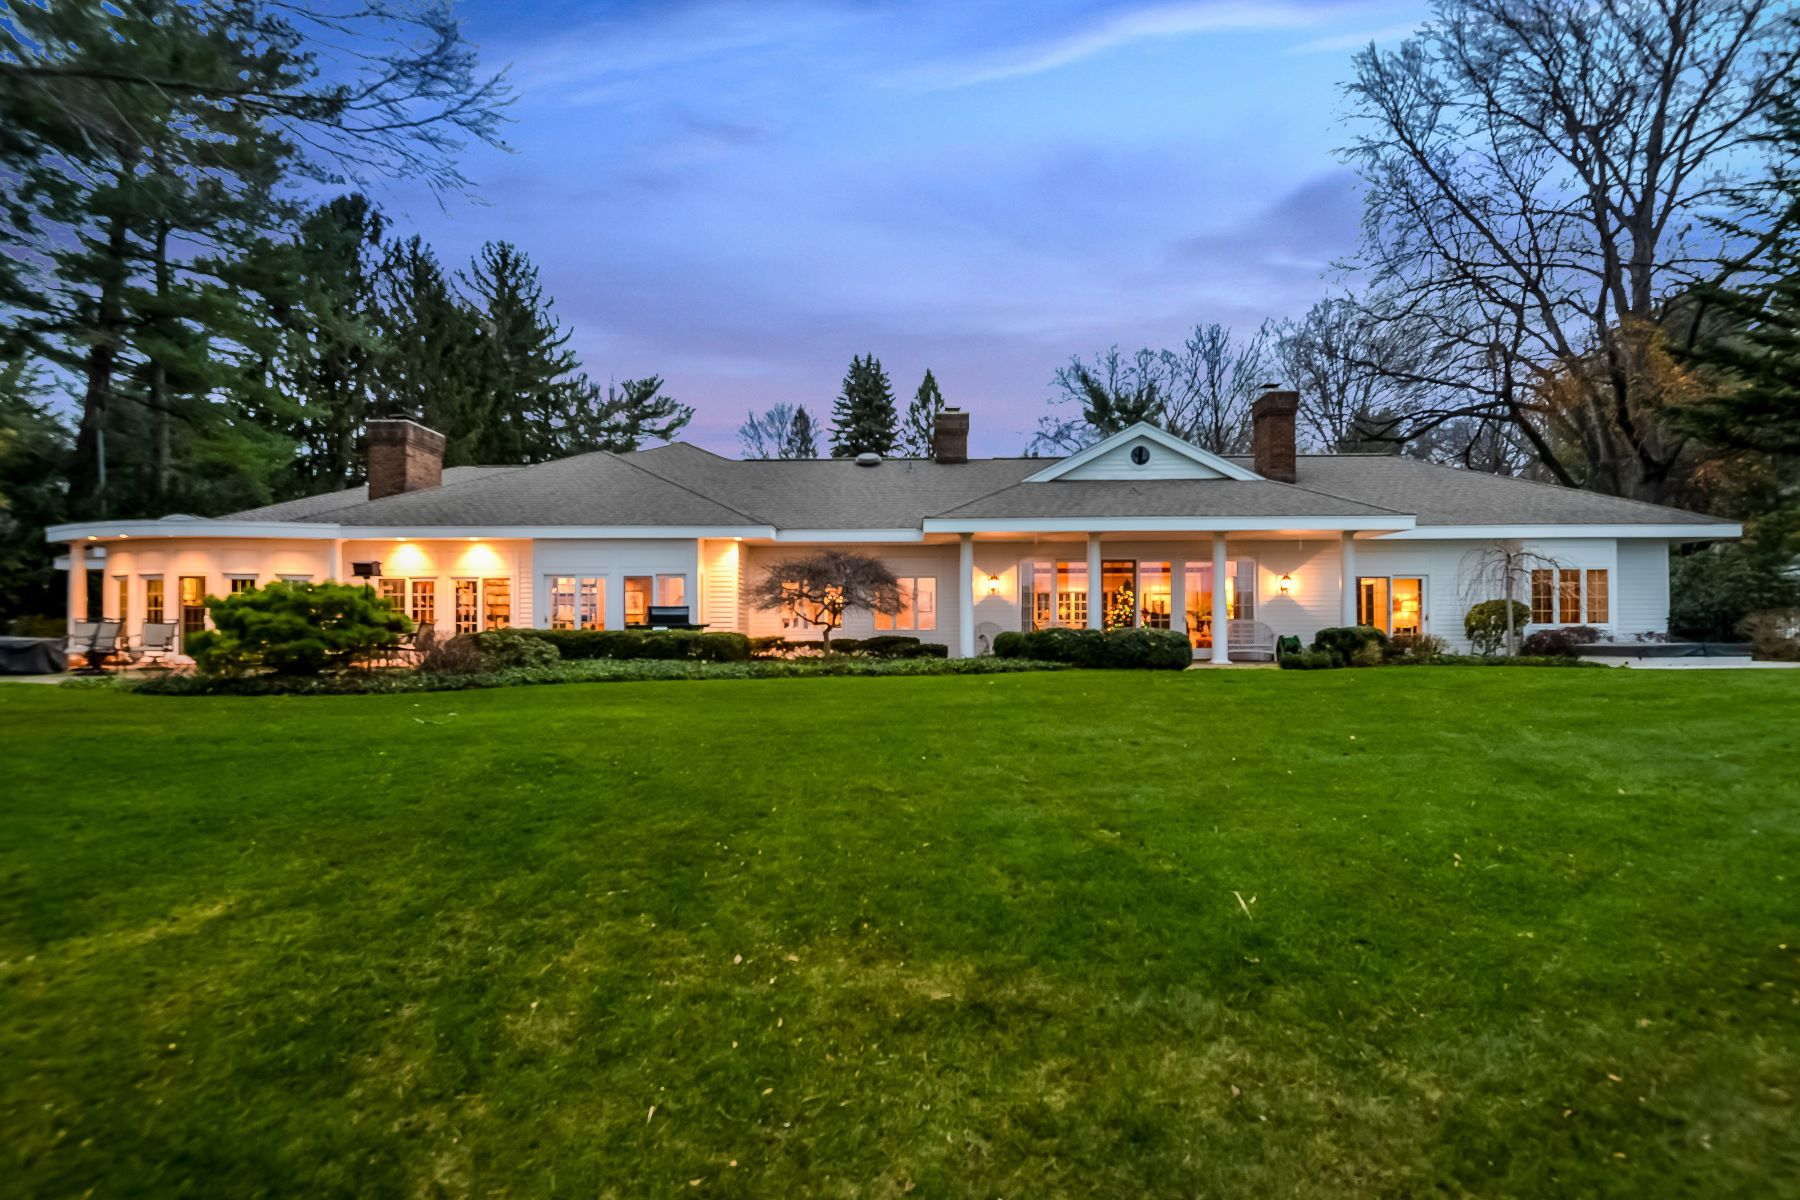 Single Family Home for Sale at Exclusive Spring Lake Estate With Incomparable Lake Michigan Views 2925 Judson Road Spring Lake, Michigan, 49456 United States